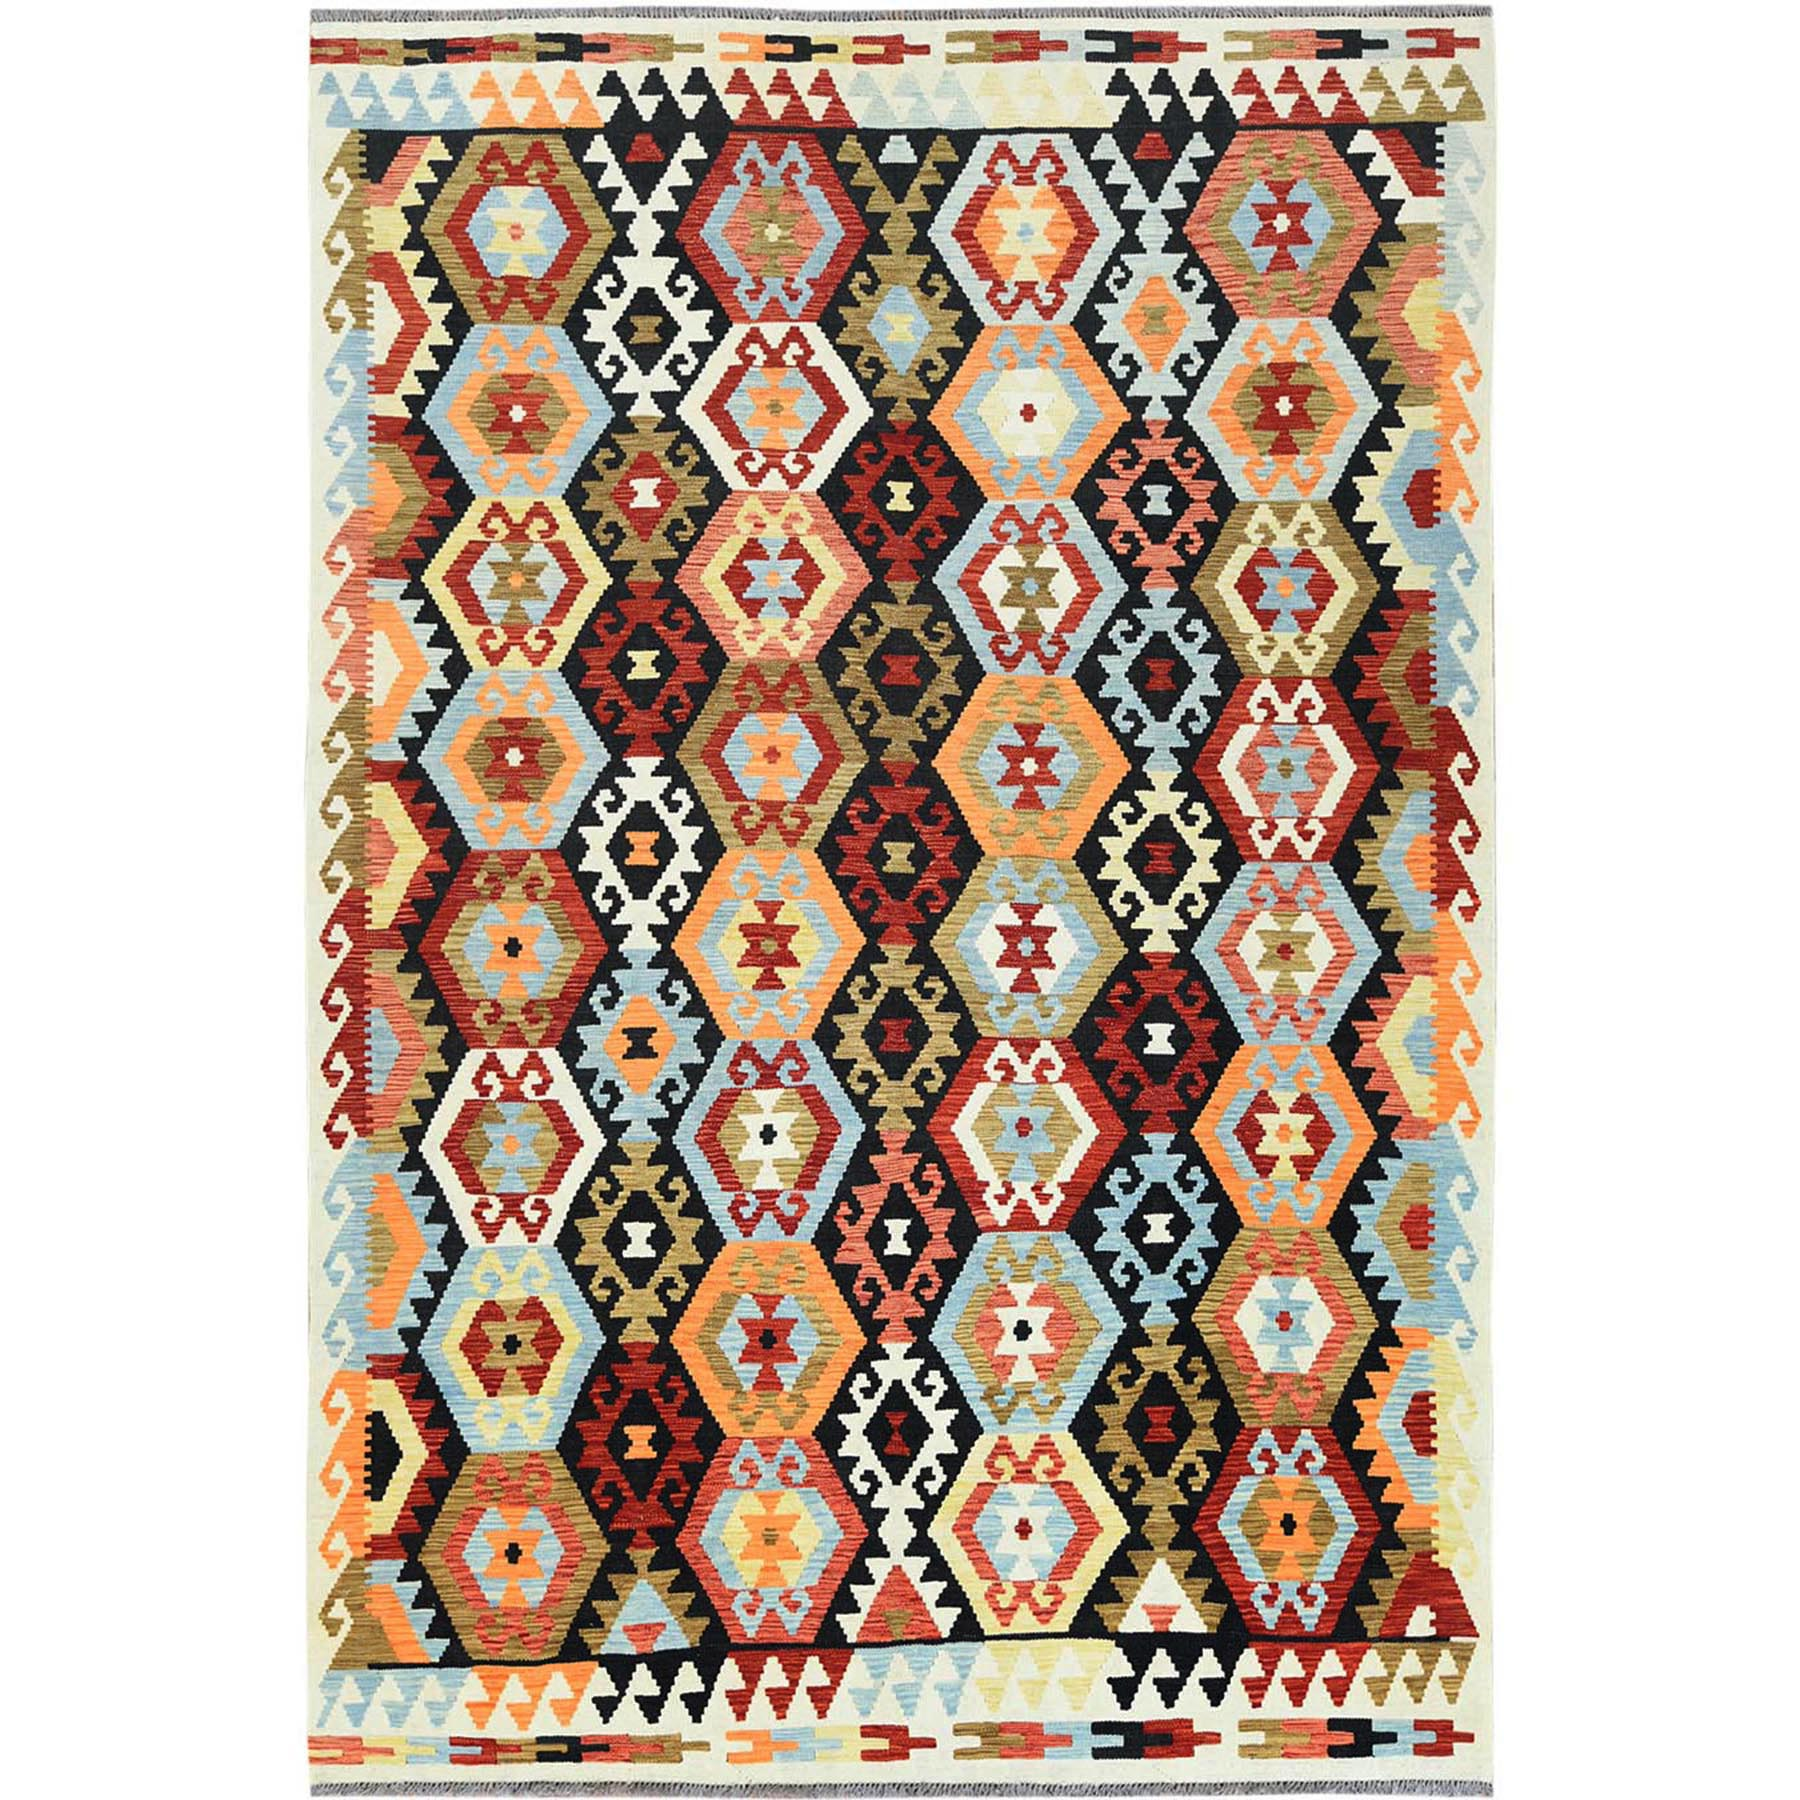 "6'5""x9'6"" Colorful Tribal Design Pure Vibrant Wool Reversible Flat Weave Afghan Kilim Hand Woven Oriental Rug"